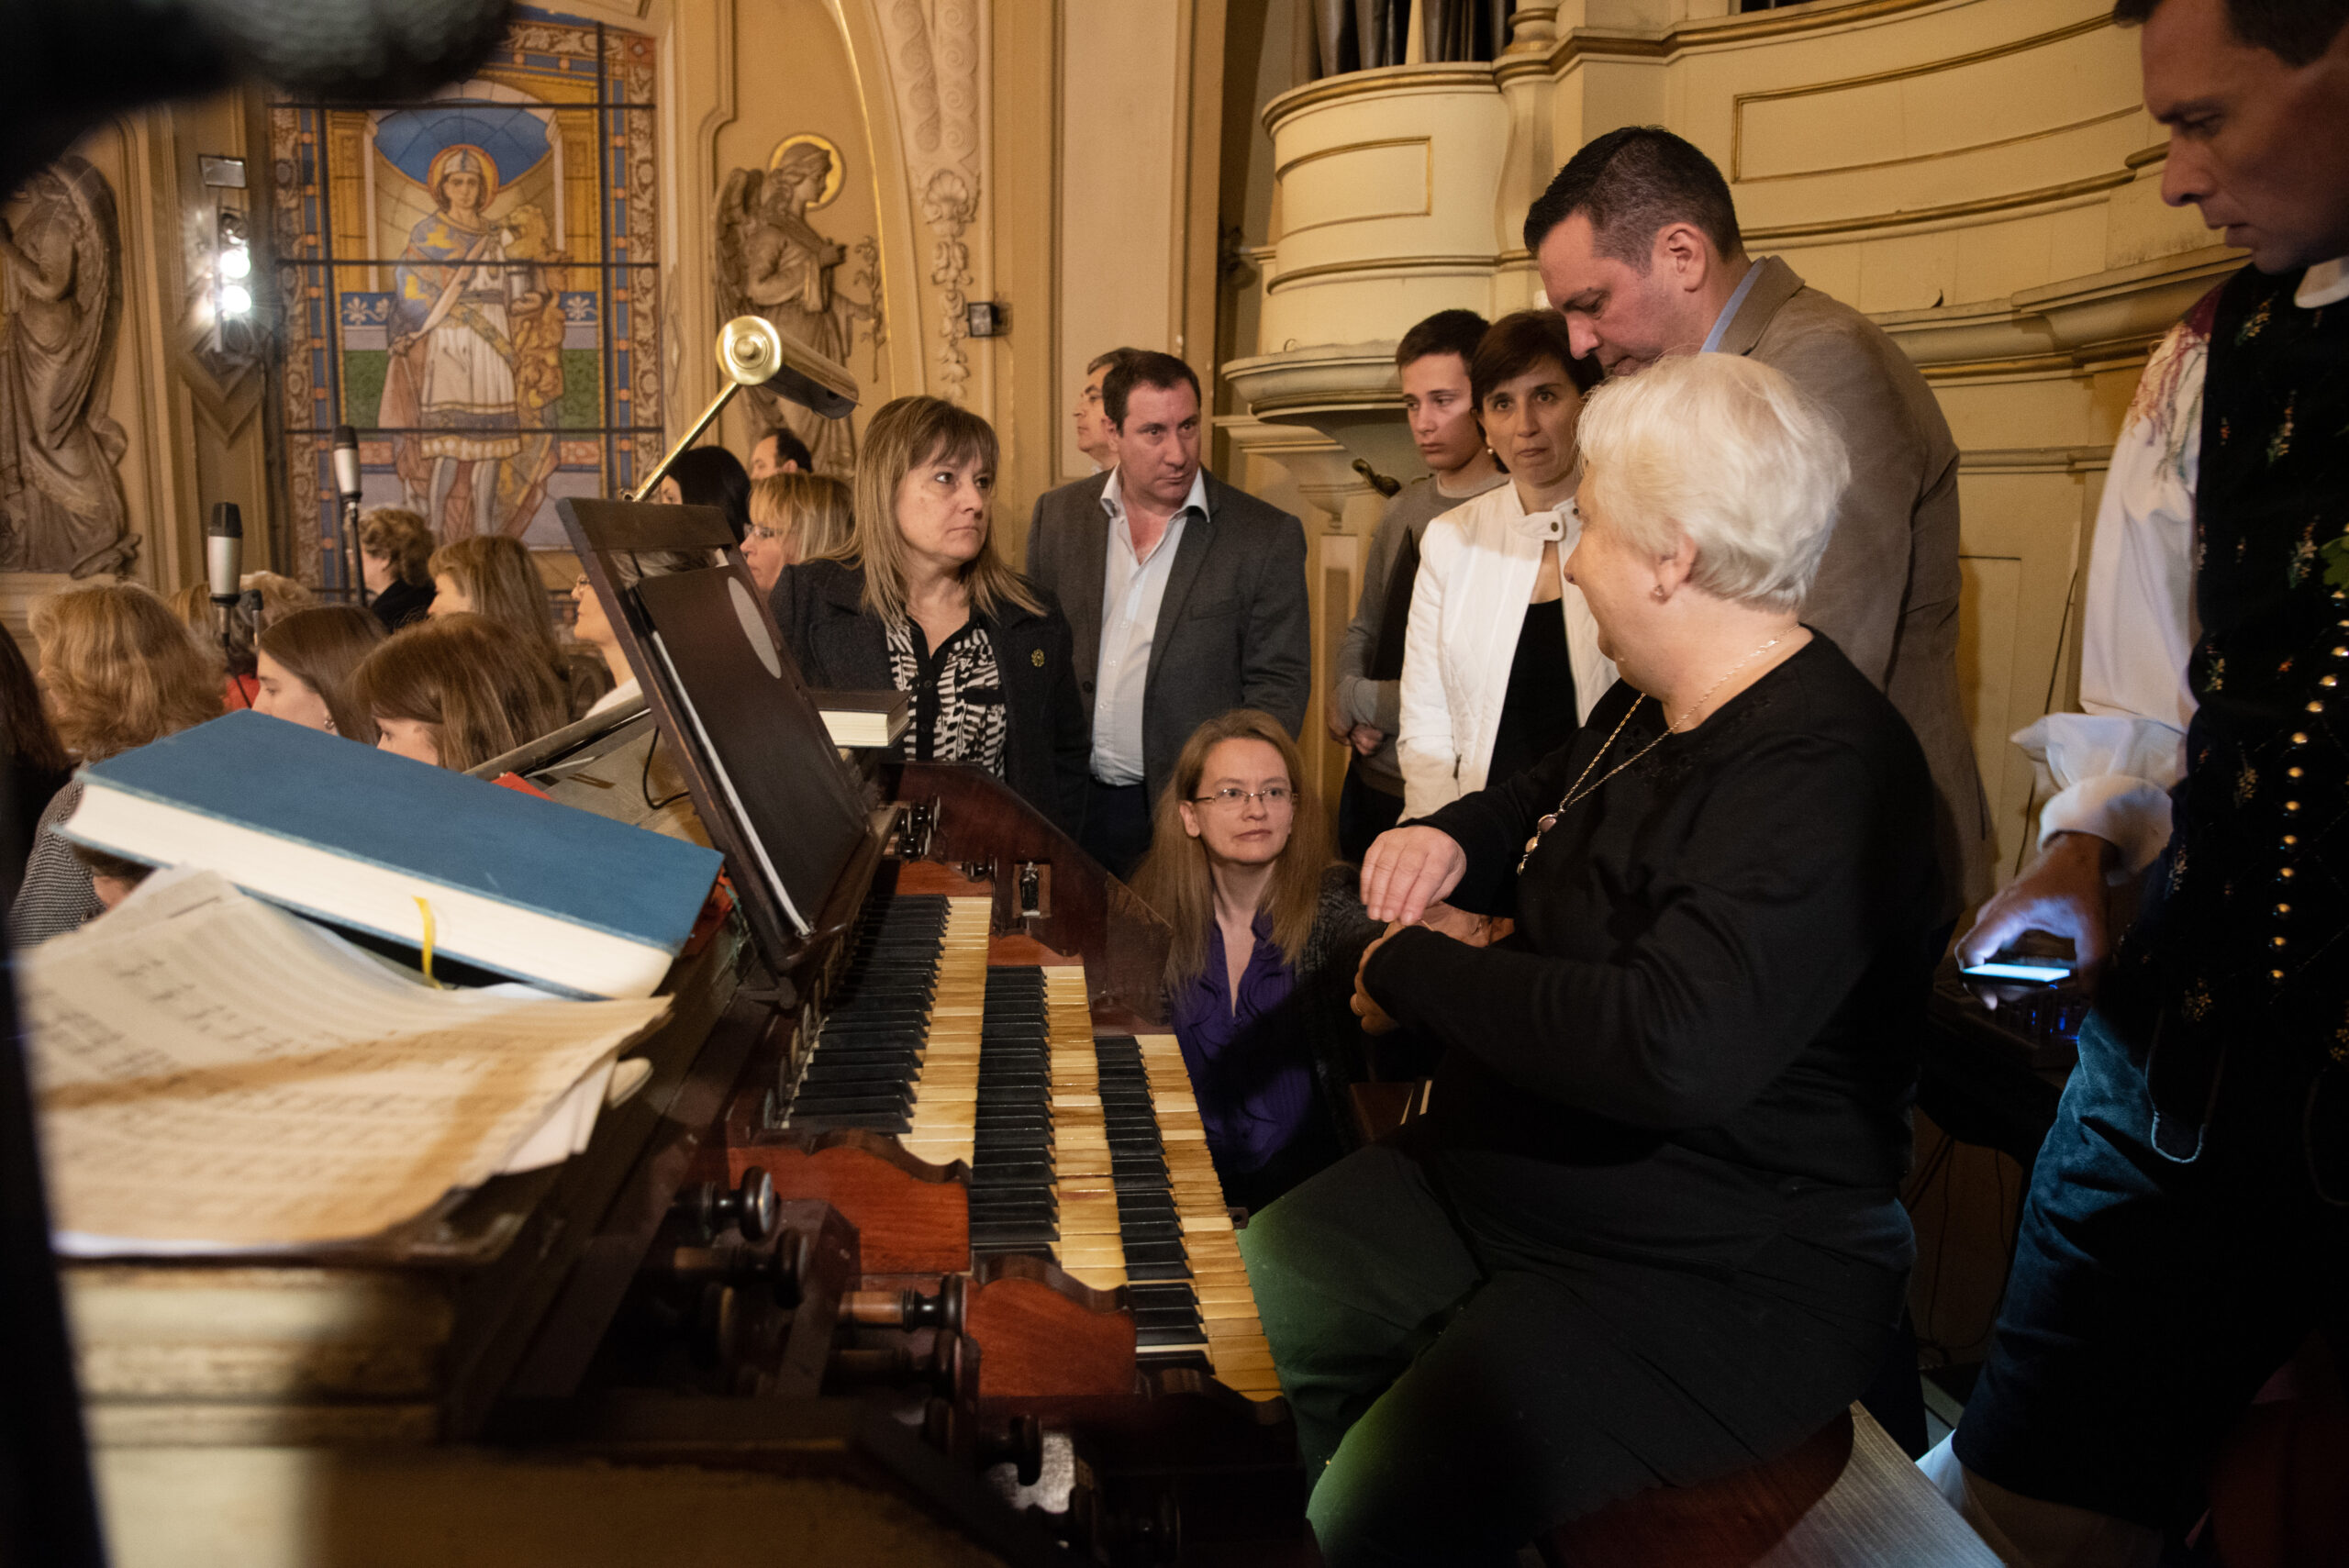 Marko Vombergar, Argentina: In the Choir During a Thanksgiving Mass, 2018, United Slovenian Choirs in Argentina - United choirs in the choir at the Buenos Aires Cathedral on 30 September 2018 on the occasion of the 70th anniversary of the arrival of Slovenians in Argentina.